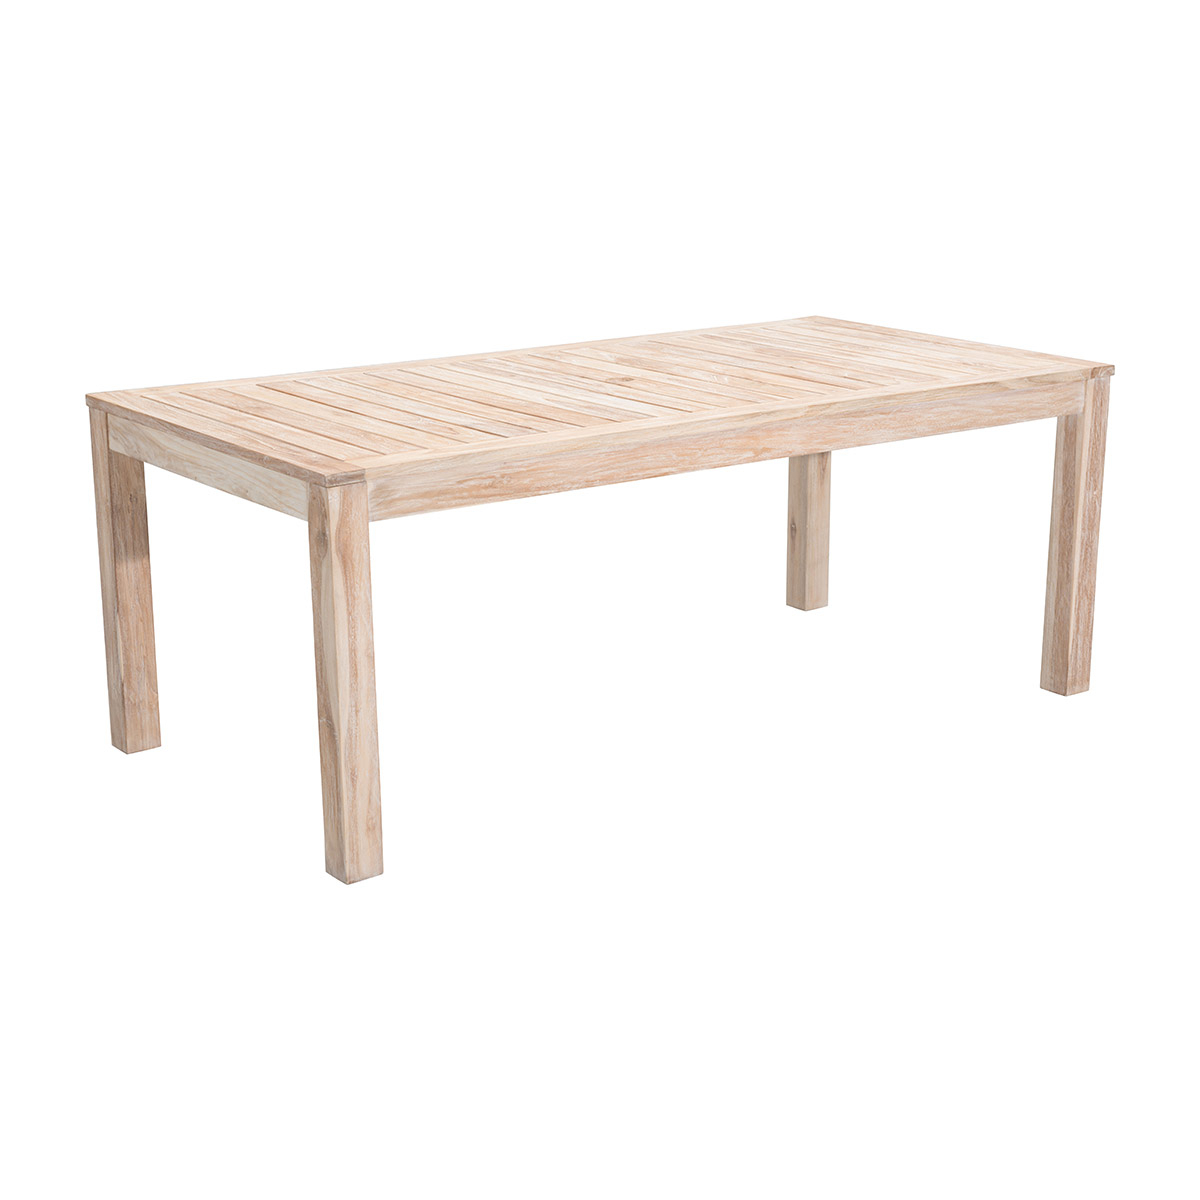 Zuo Outdoor West Port Dining Table In White Wash Intended For 2018 West Dining Tables (View 12 of 25)